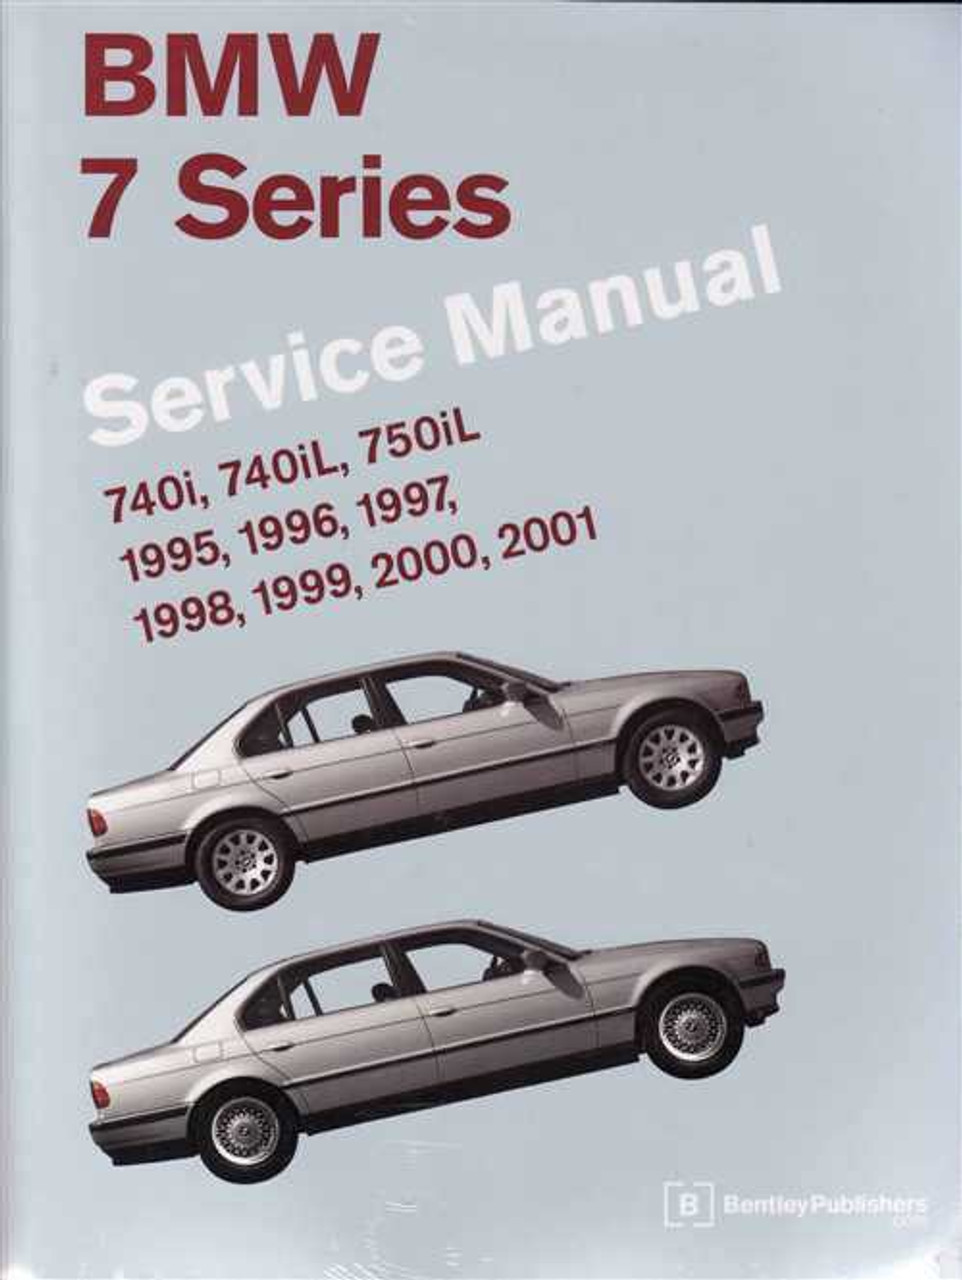 small resolution of b13772 bmw service manual resized 77443 1339460178 jpg c 2 imbypass on